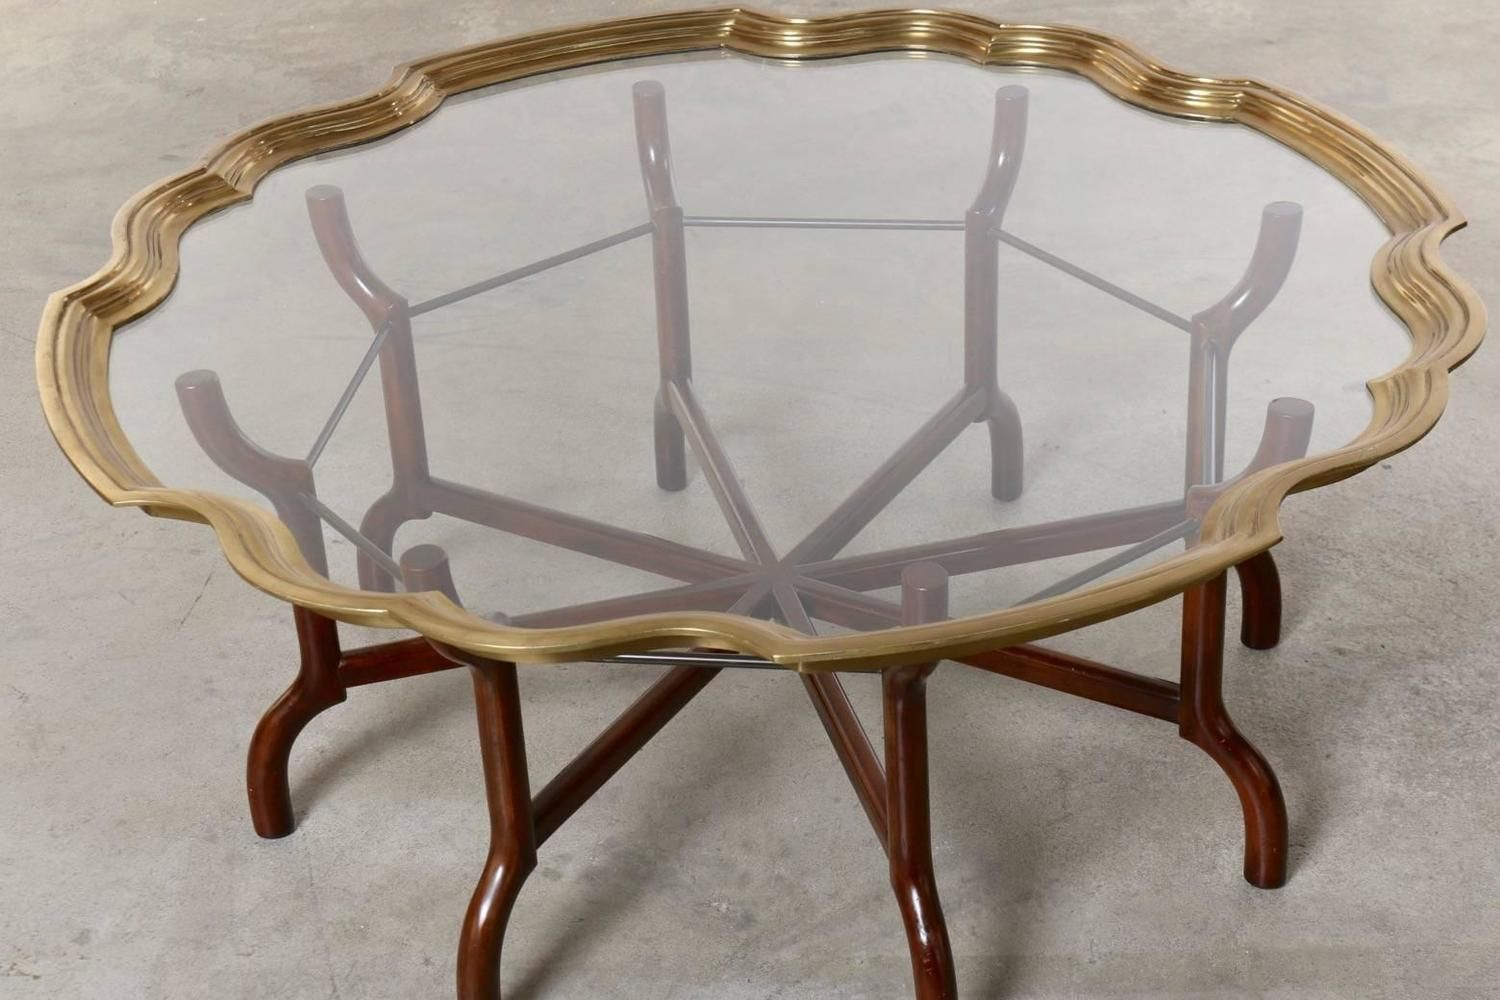 Baker Furniture Regency Directoire Style Round Coffee Bouillotte Table Image 1 Of 13 Table Coffee Table Baker Furniture [ 1600 x 1600 Pixel ]